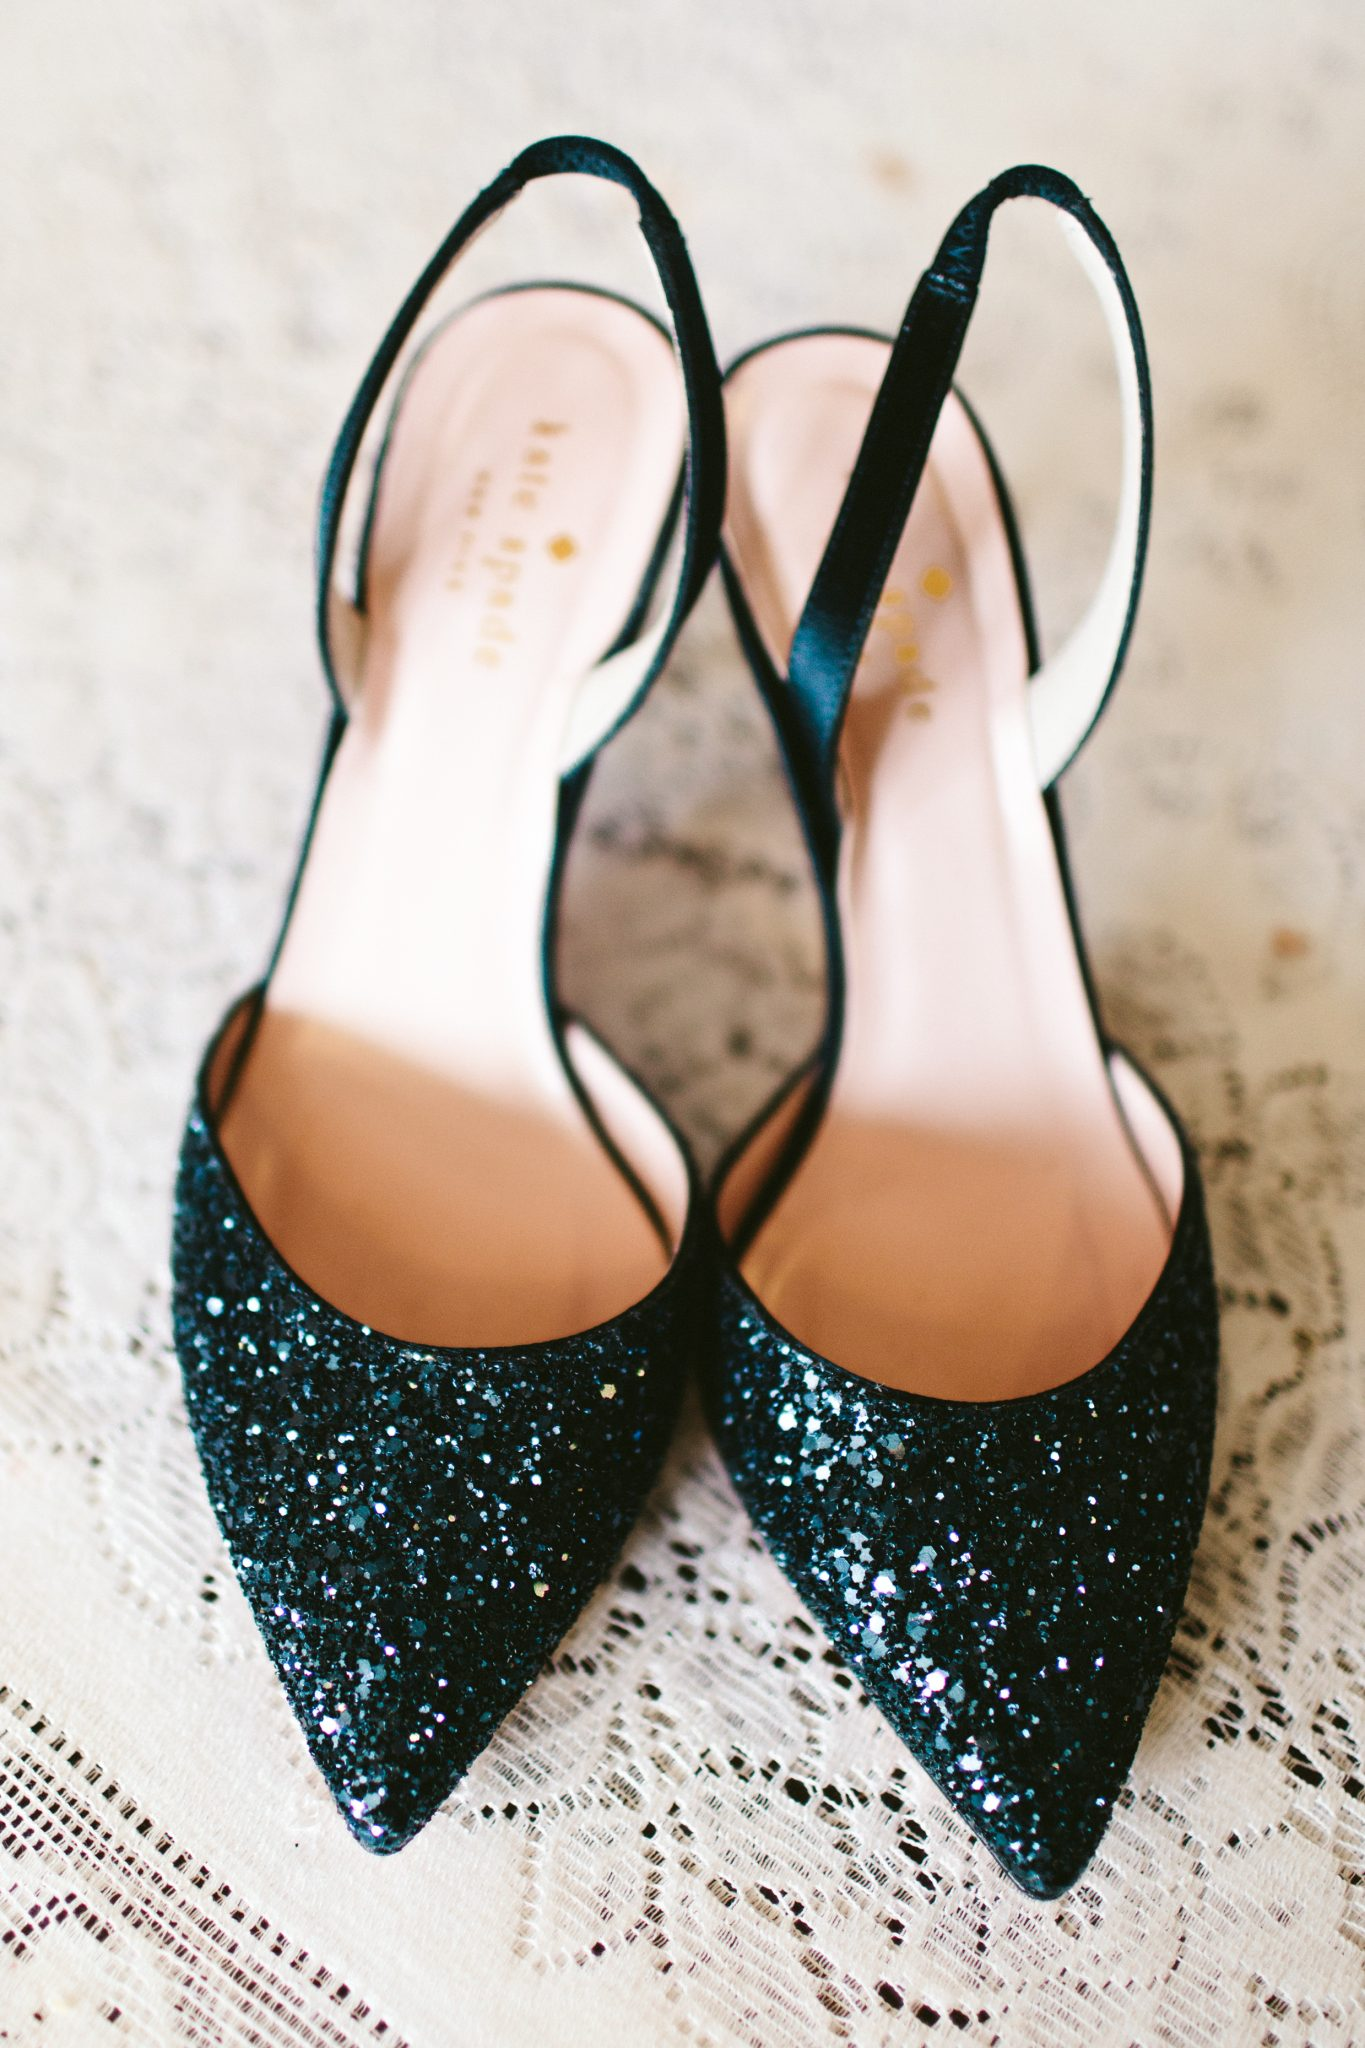 Kate Spade wedding shoes, sparkly blue wedding shoes, blue wedding shoes, kate spade wedding, sparkly wedding shoes, unique wedding shoes, Brooklyn wedding photography, Brooklyn wedding, Philadelphia wedding photographer, Philadelphia wedding, Brooklyn new york photographer, unique wedding inspiration, fun wedding photos, romantic wedding, destination wedding photographer, wedding photography inspiration, destination wedding inspiration, urban wedding, city wedding ideas